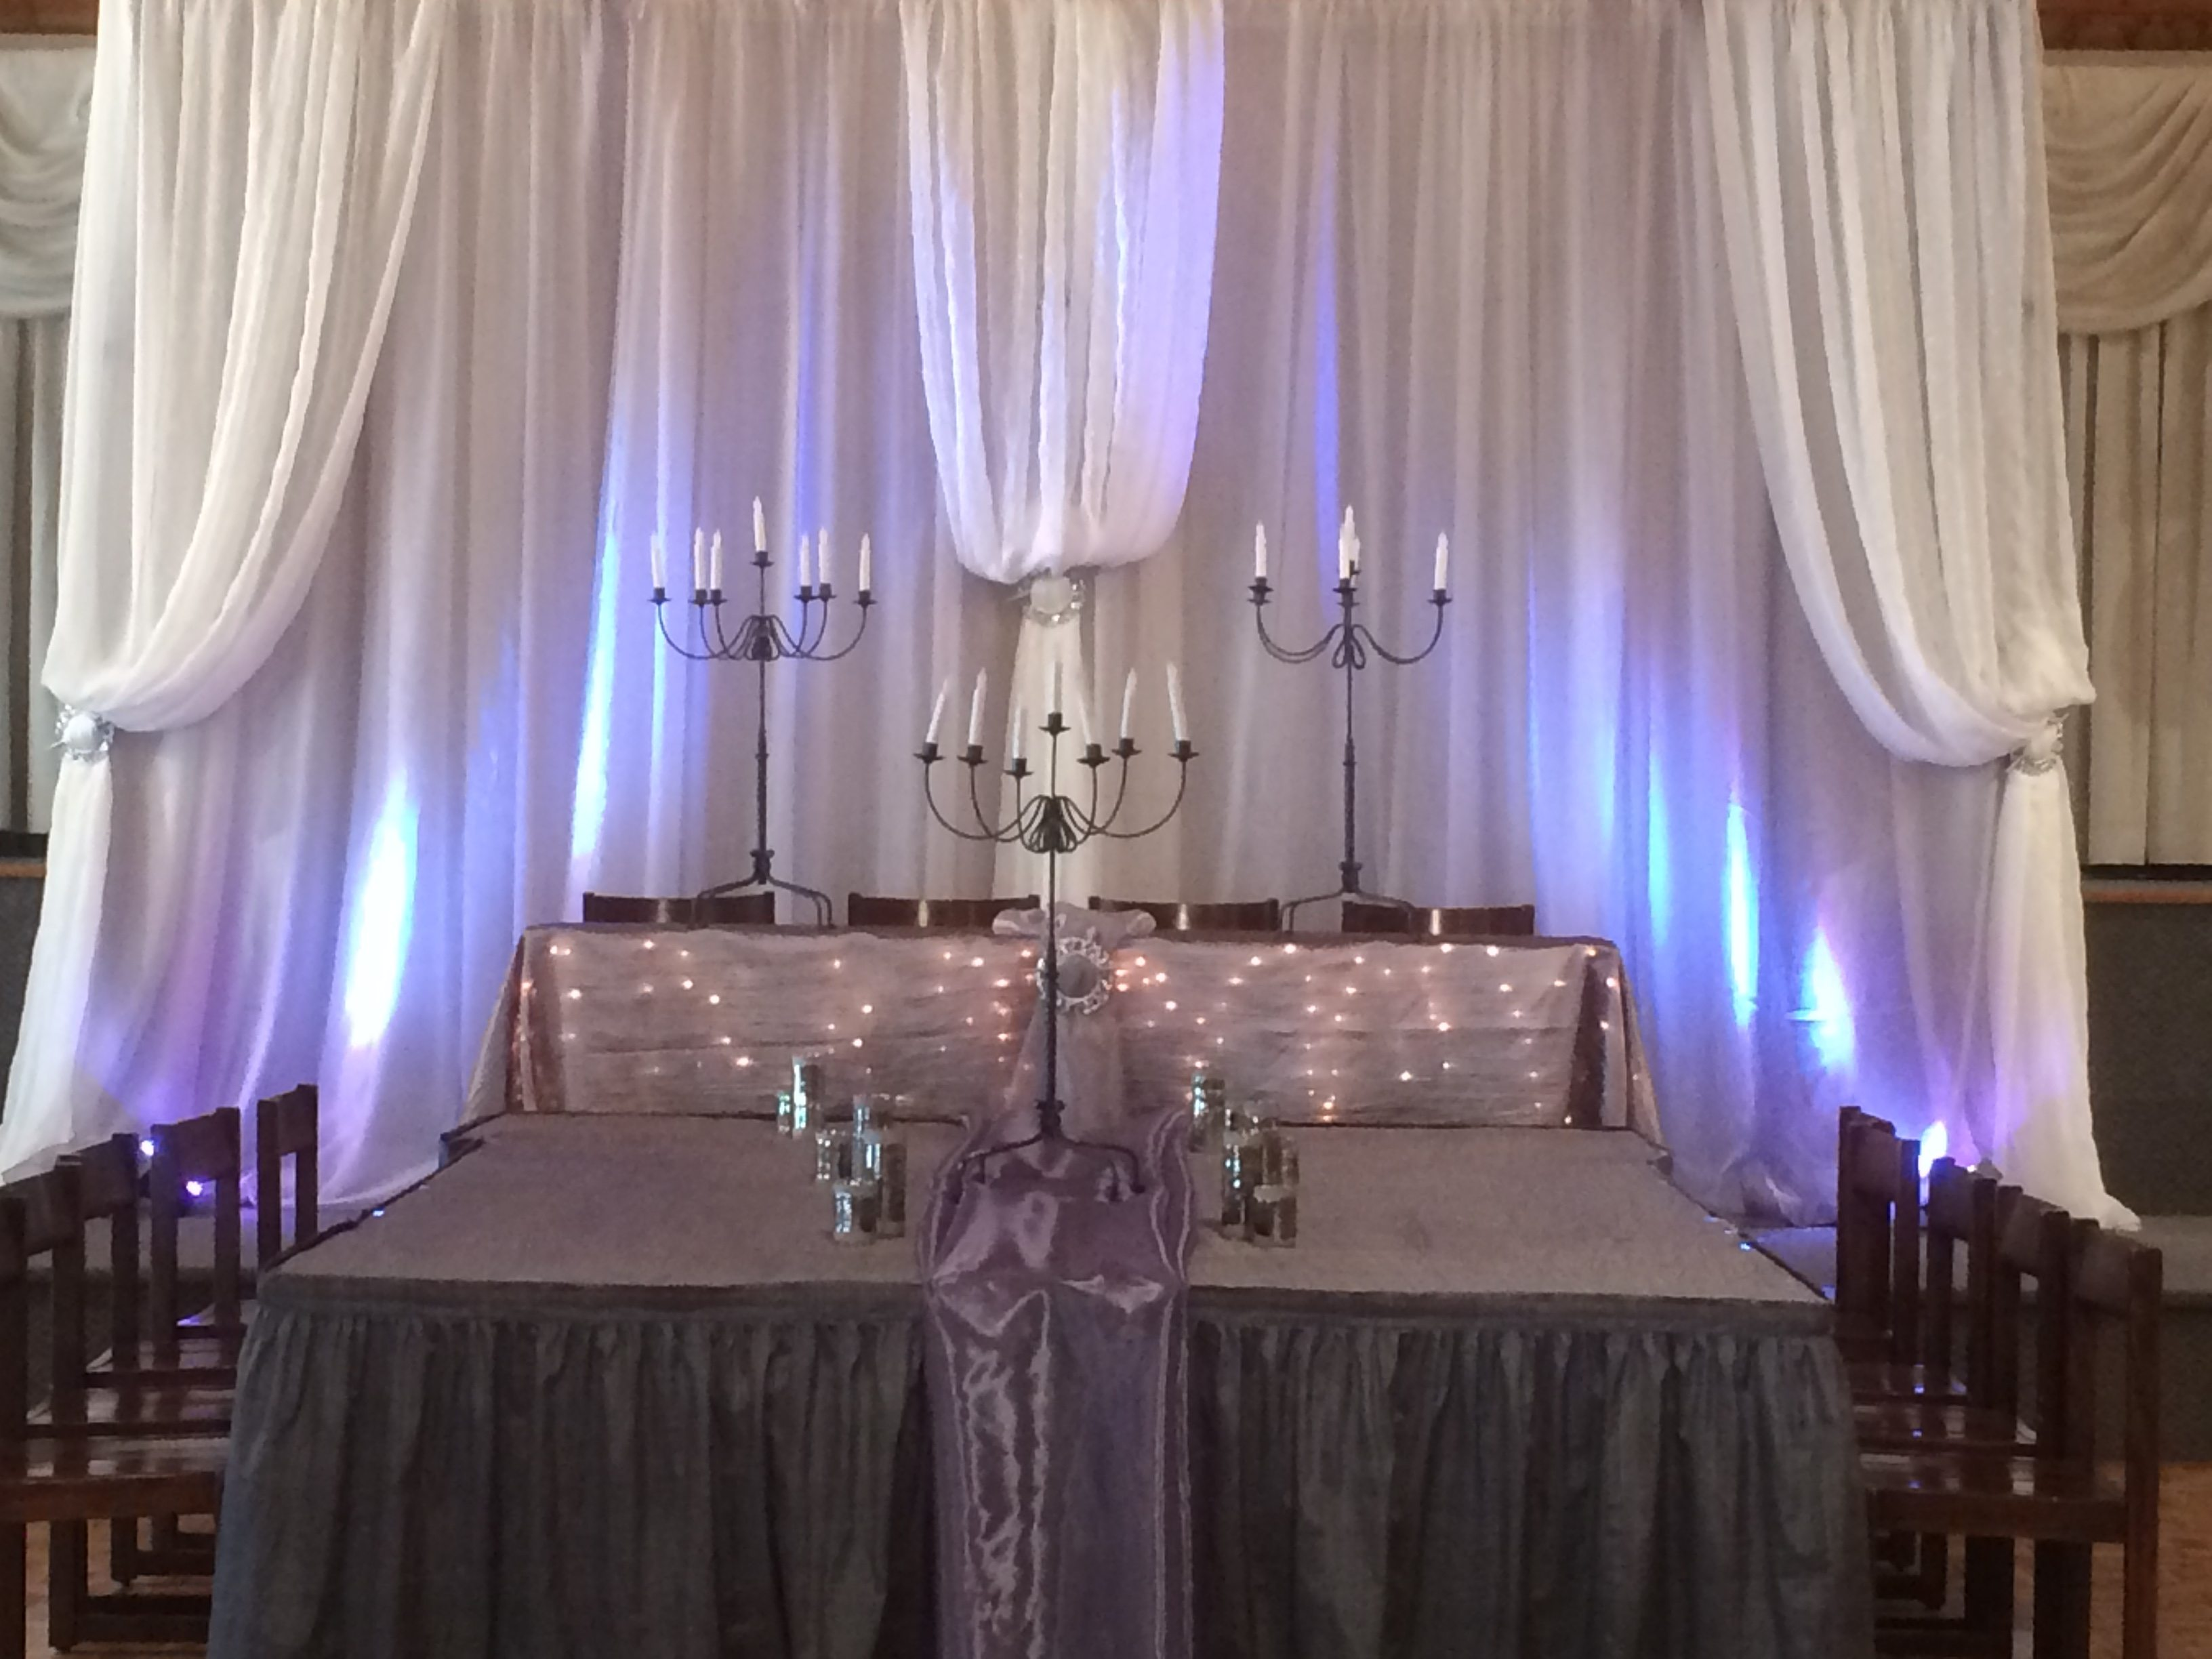 Now & Always head table with white draped backdrop, uplighting and candelabras